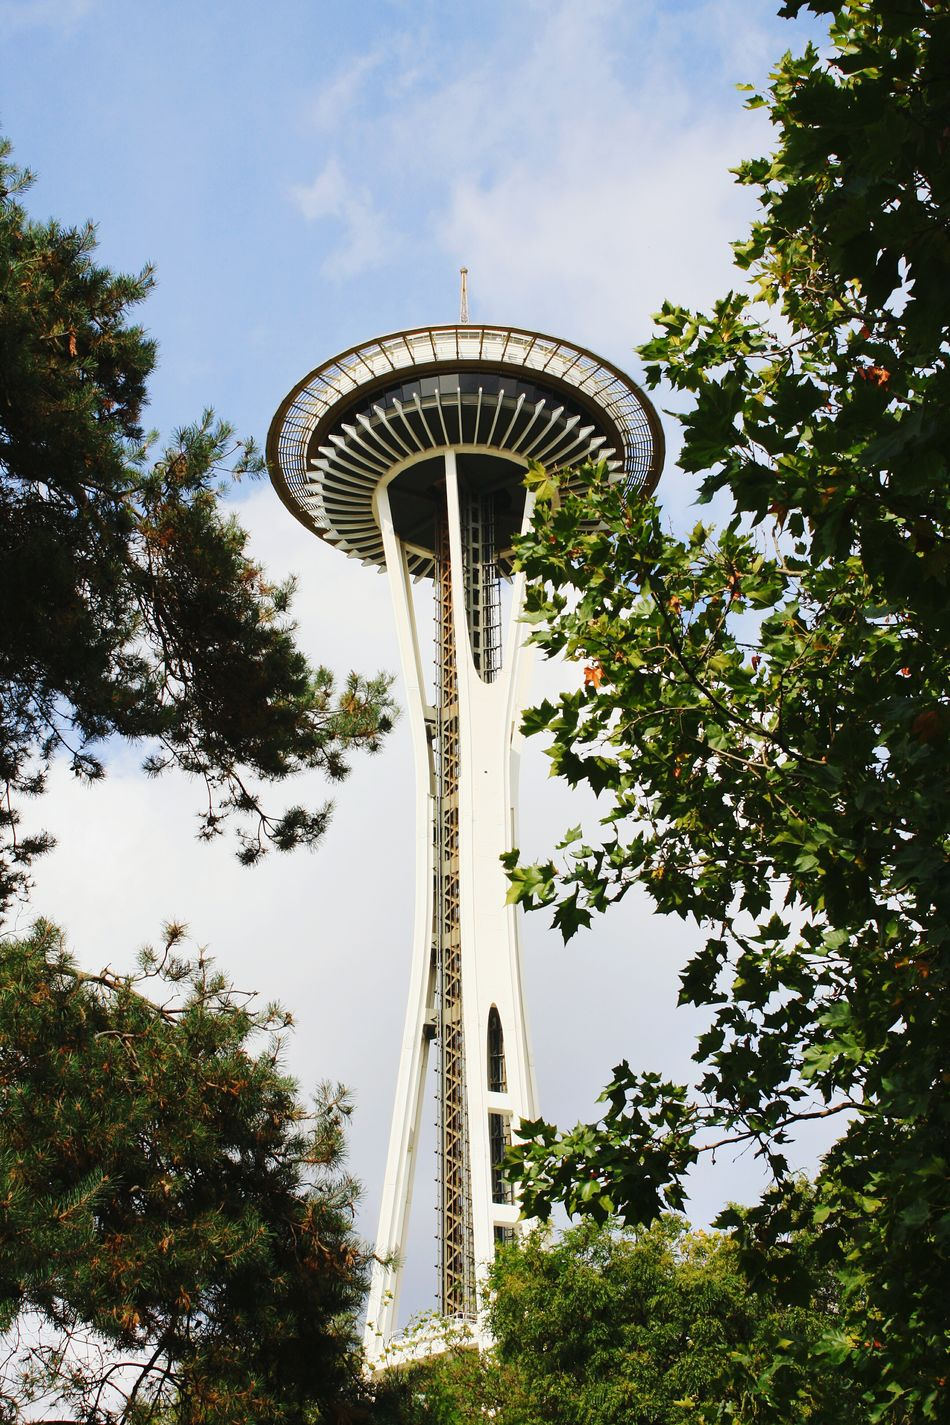 Space Needle Seattle, Washington Sky Tree Outdoors No People Building And Sky Through Trees Tourist Destination Tourist Attraction